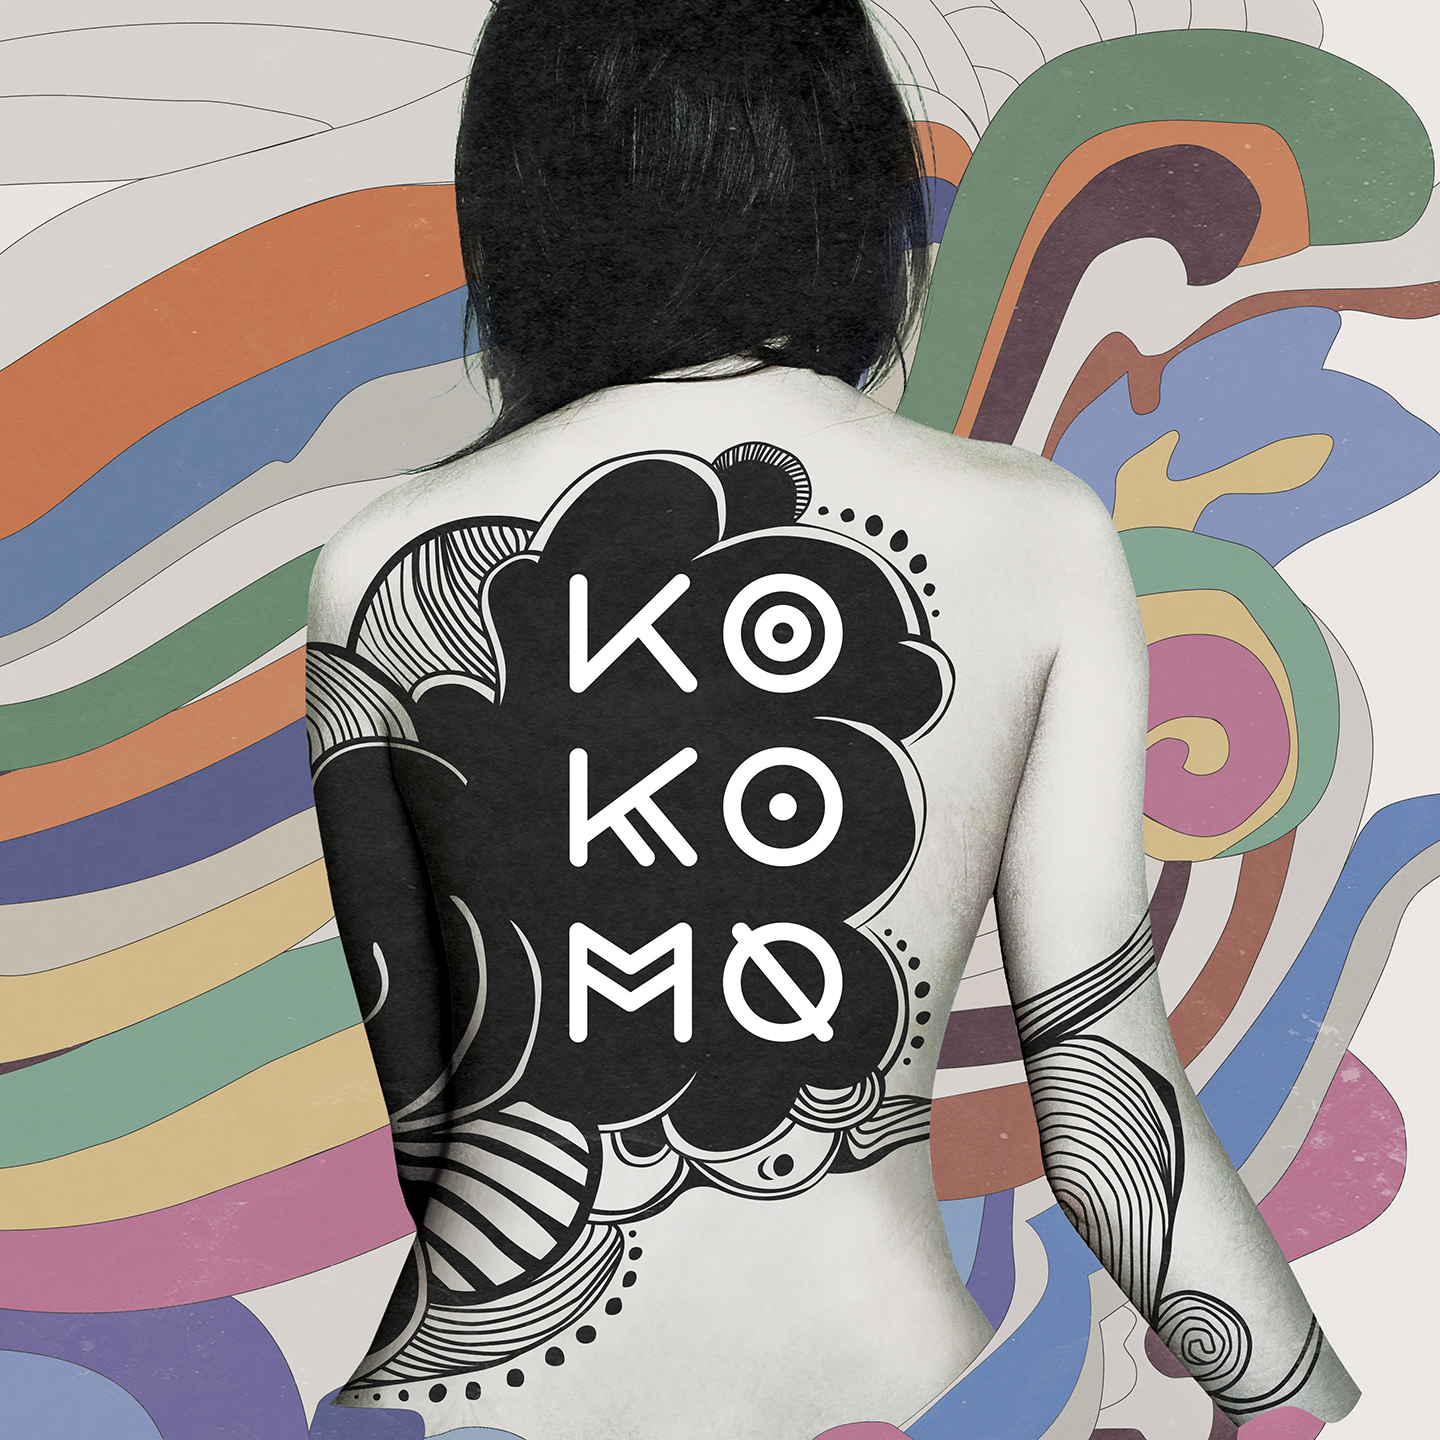 KO KO MO _TECHNICOLOR LIFE_Artwork.jpg